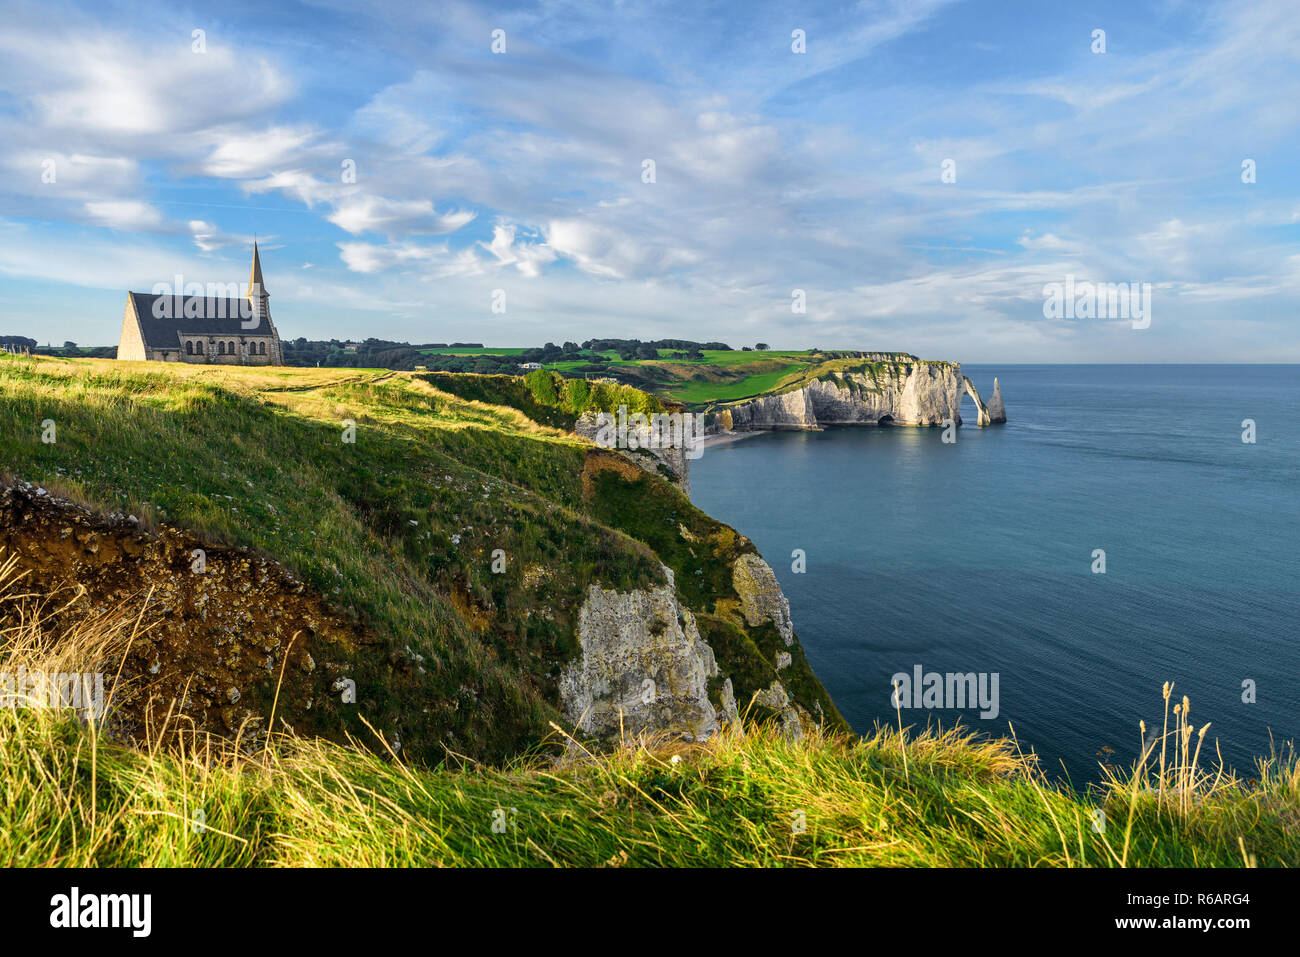 Etretat Normandy France Cliffs Church And Beautiful Famous